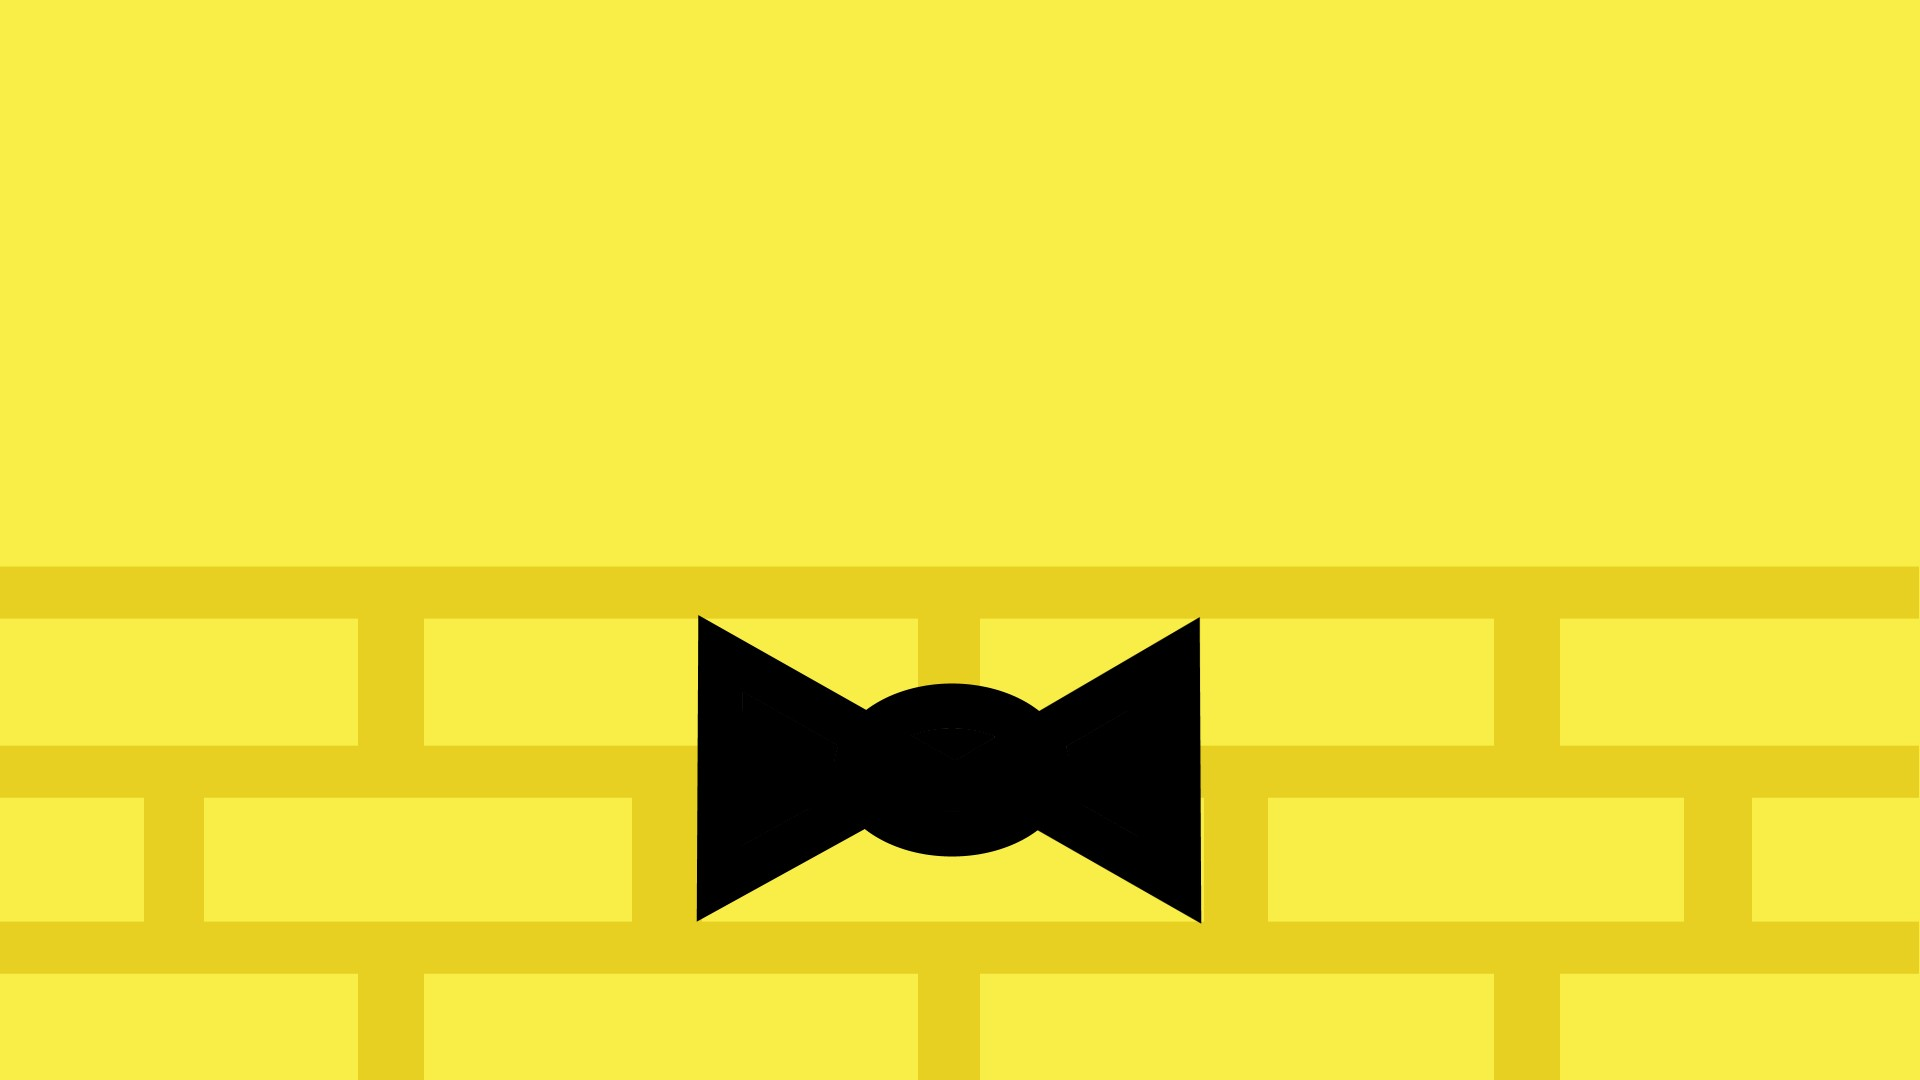 Bill Cipher wallpaper ·① Download free awesome full HD ...